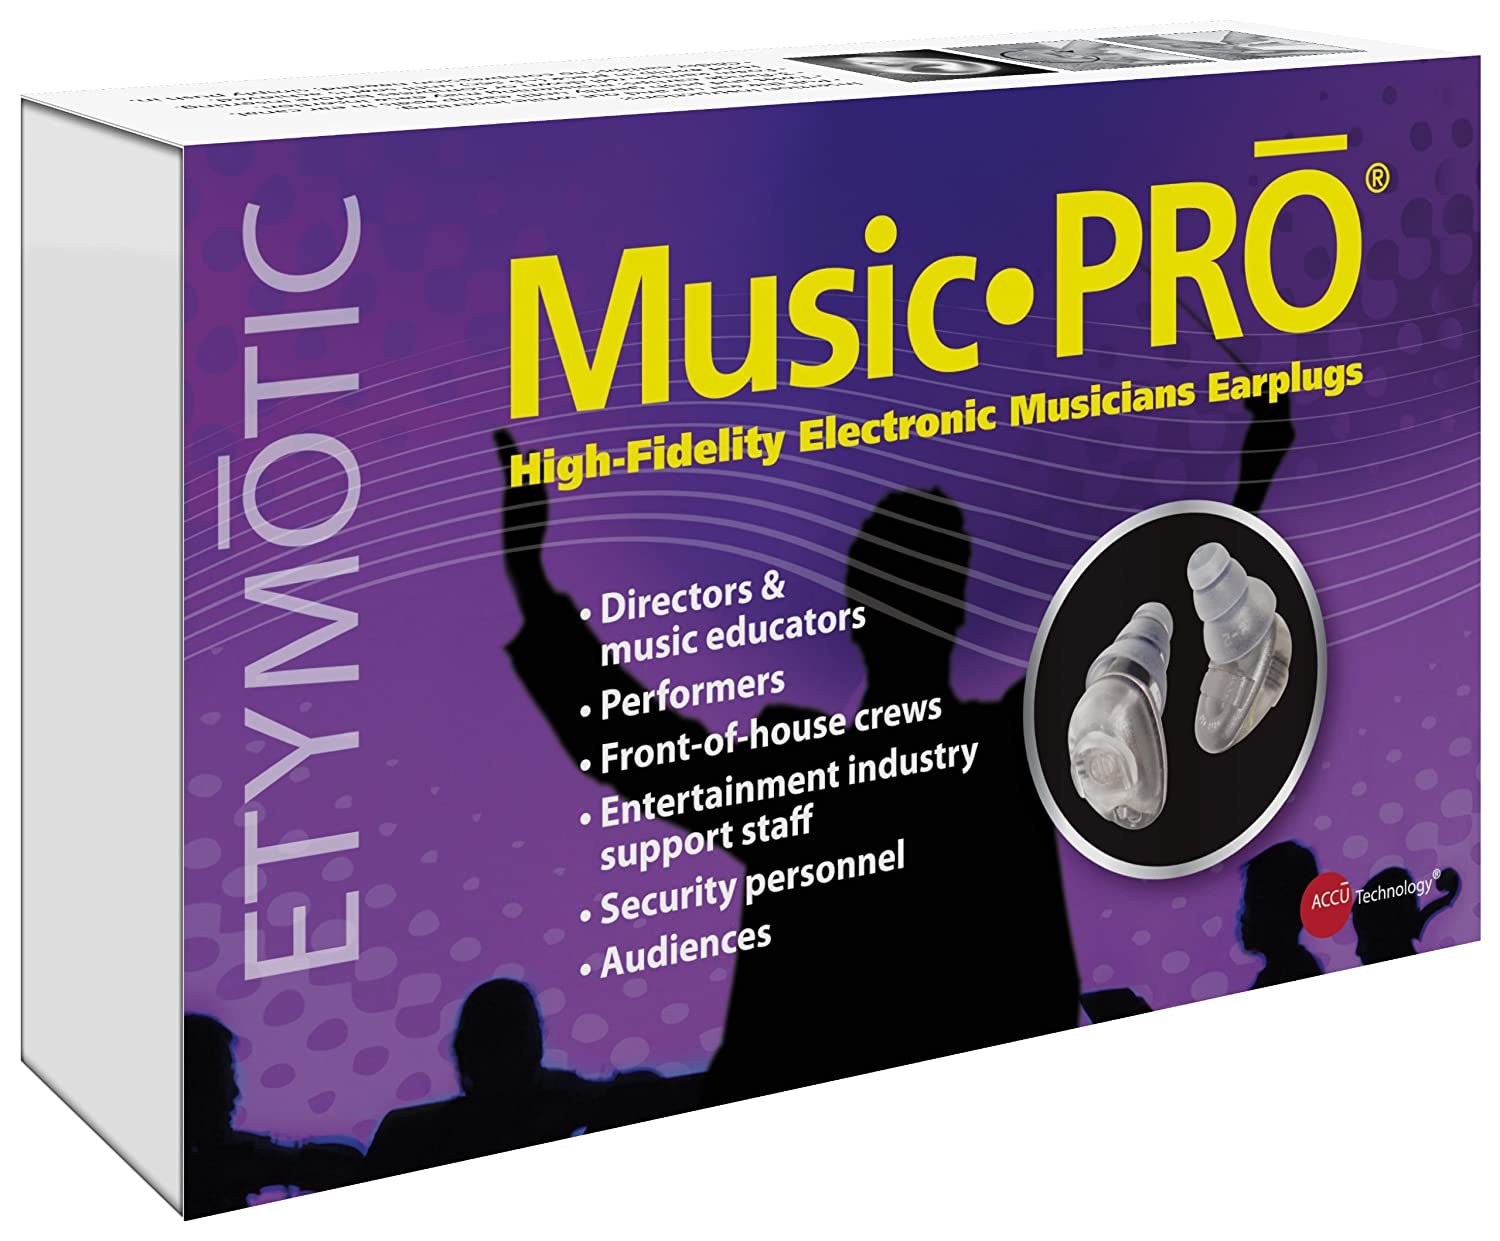 amazon com etymotic research mp9 15 music pro high fidelity amazon com etymotic research mp9 15 music pro high fidelity electronic earplugs 1 pair health personal care